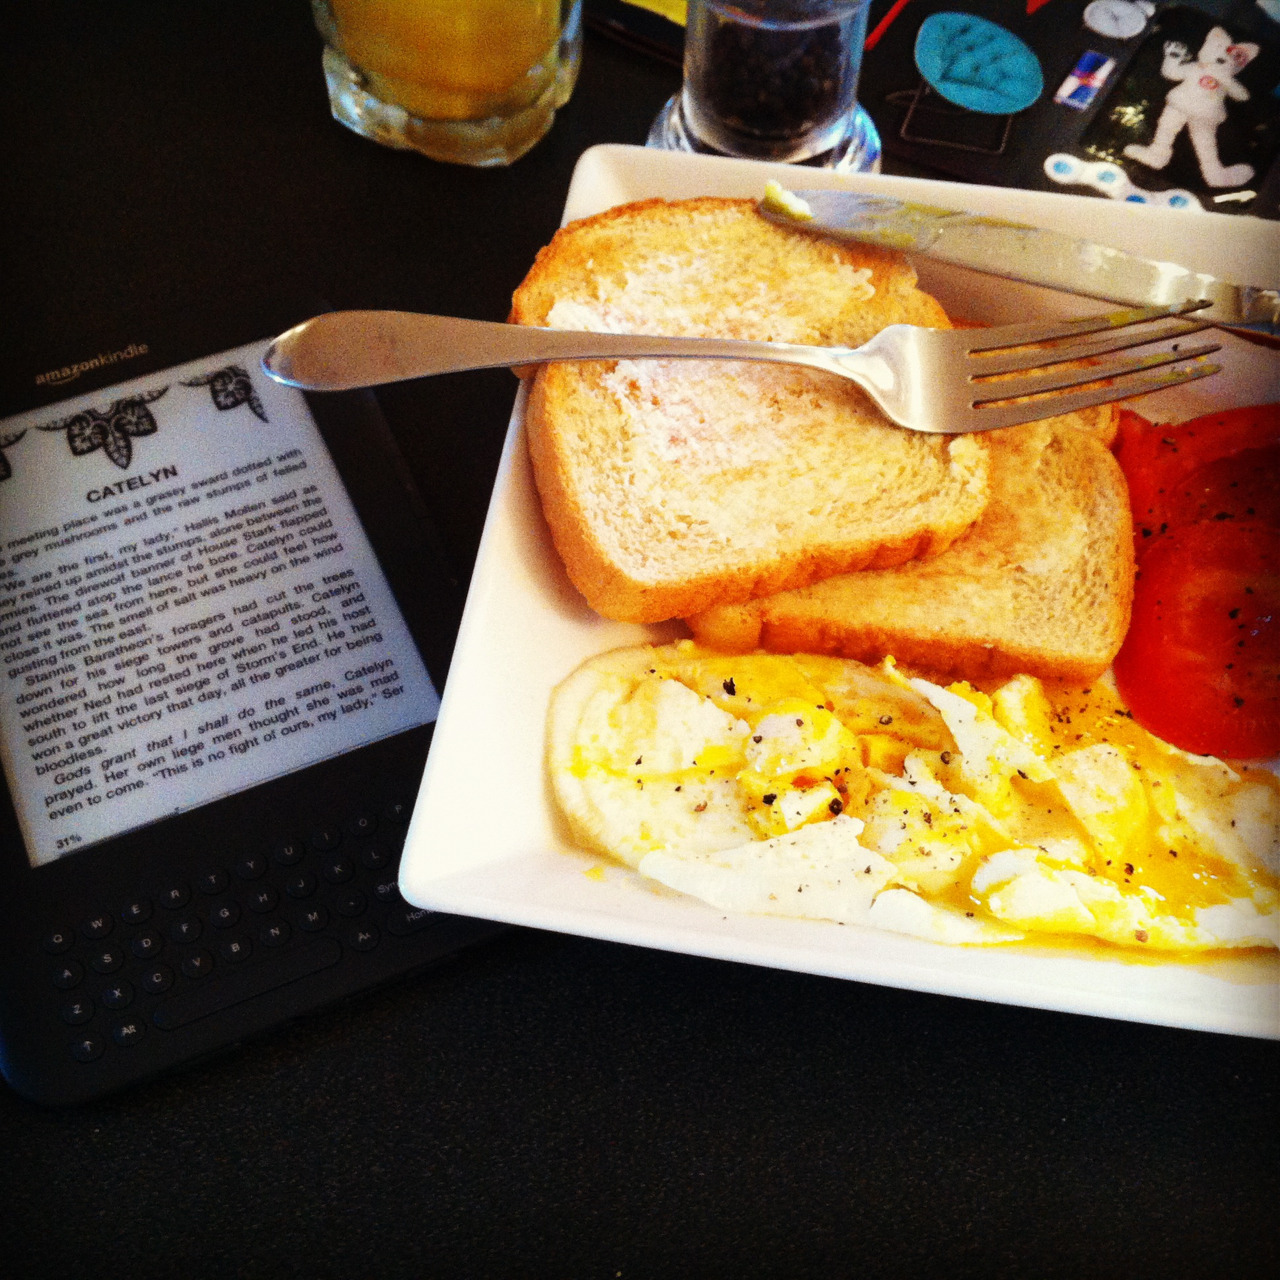 Sunday morning breakfast with a side of kindle.